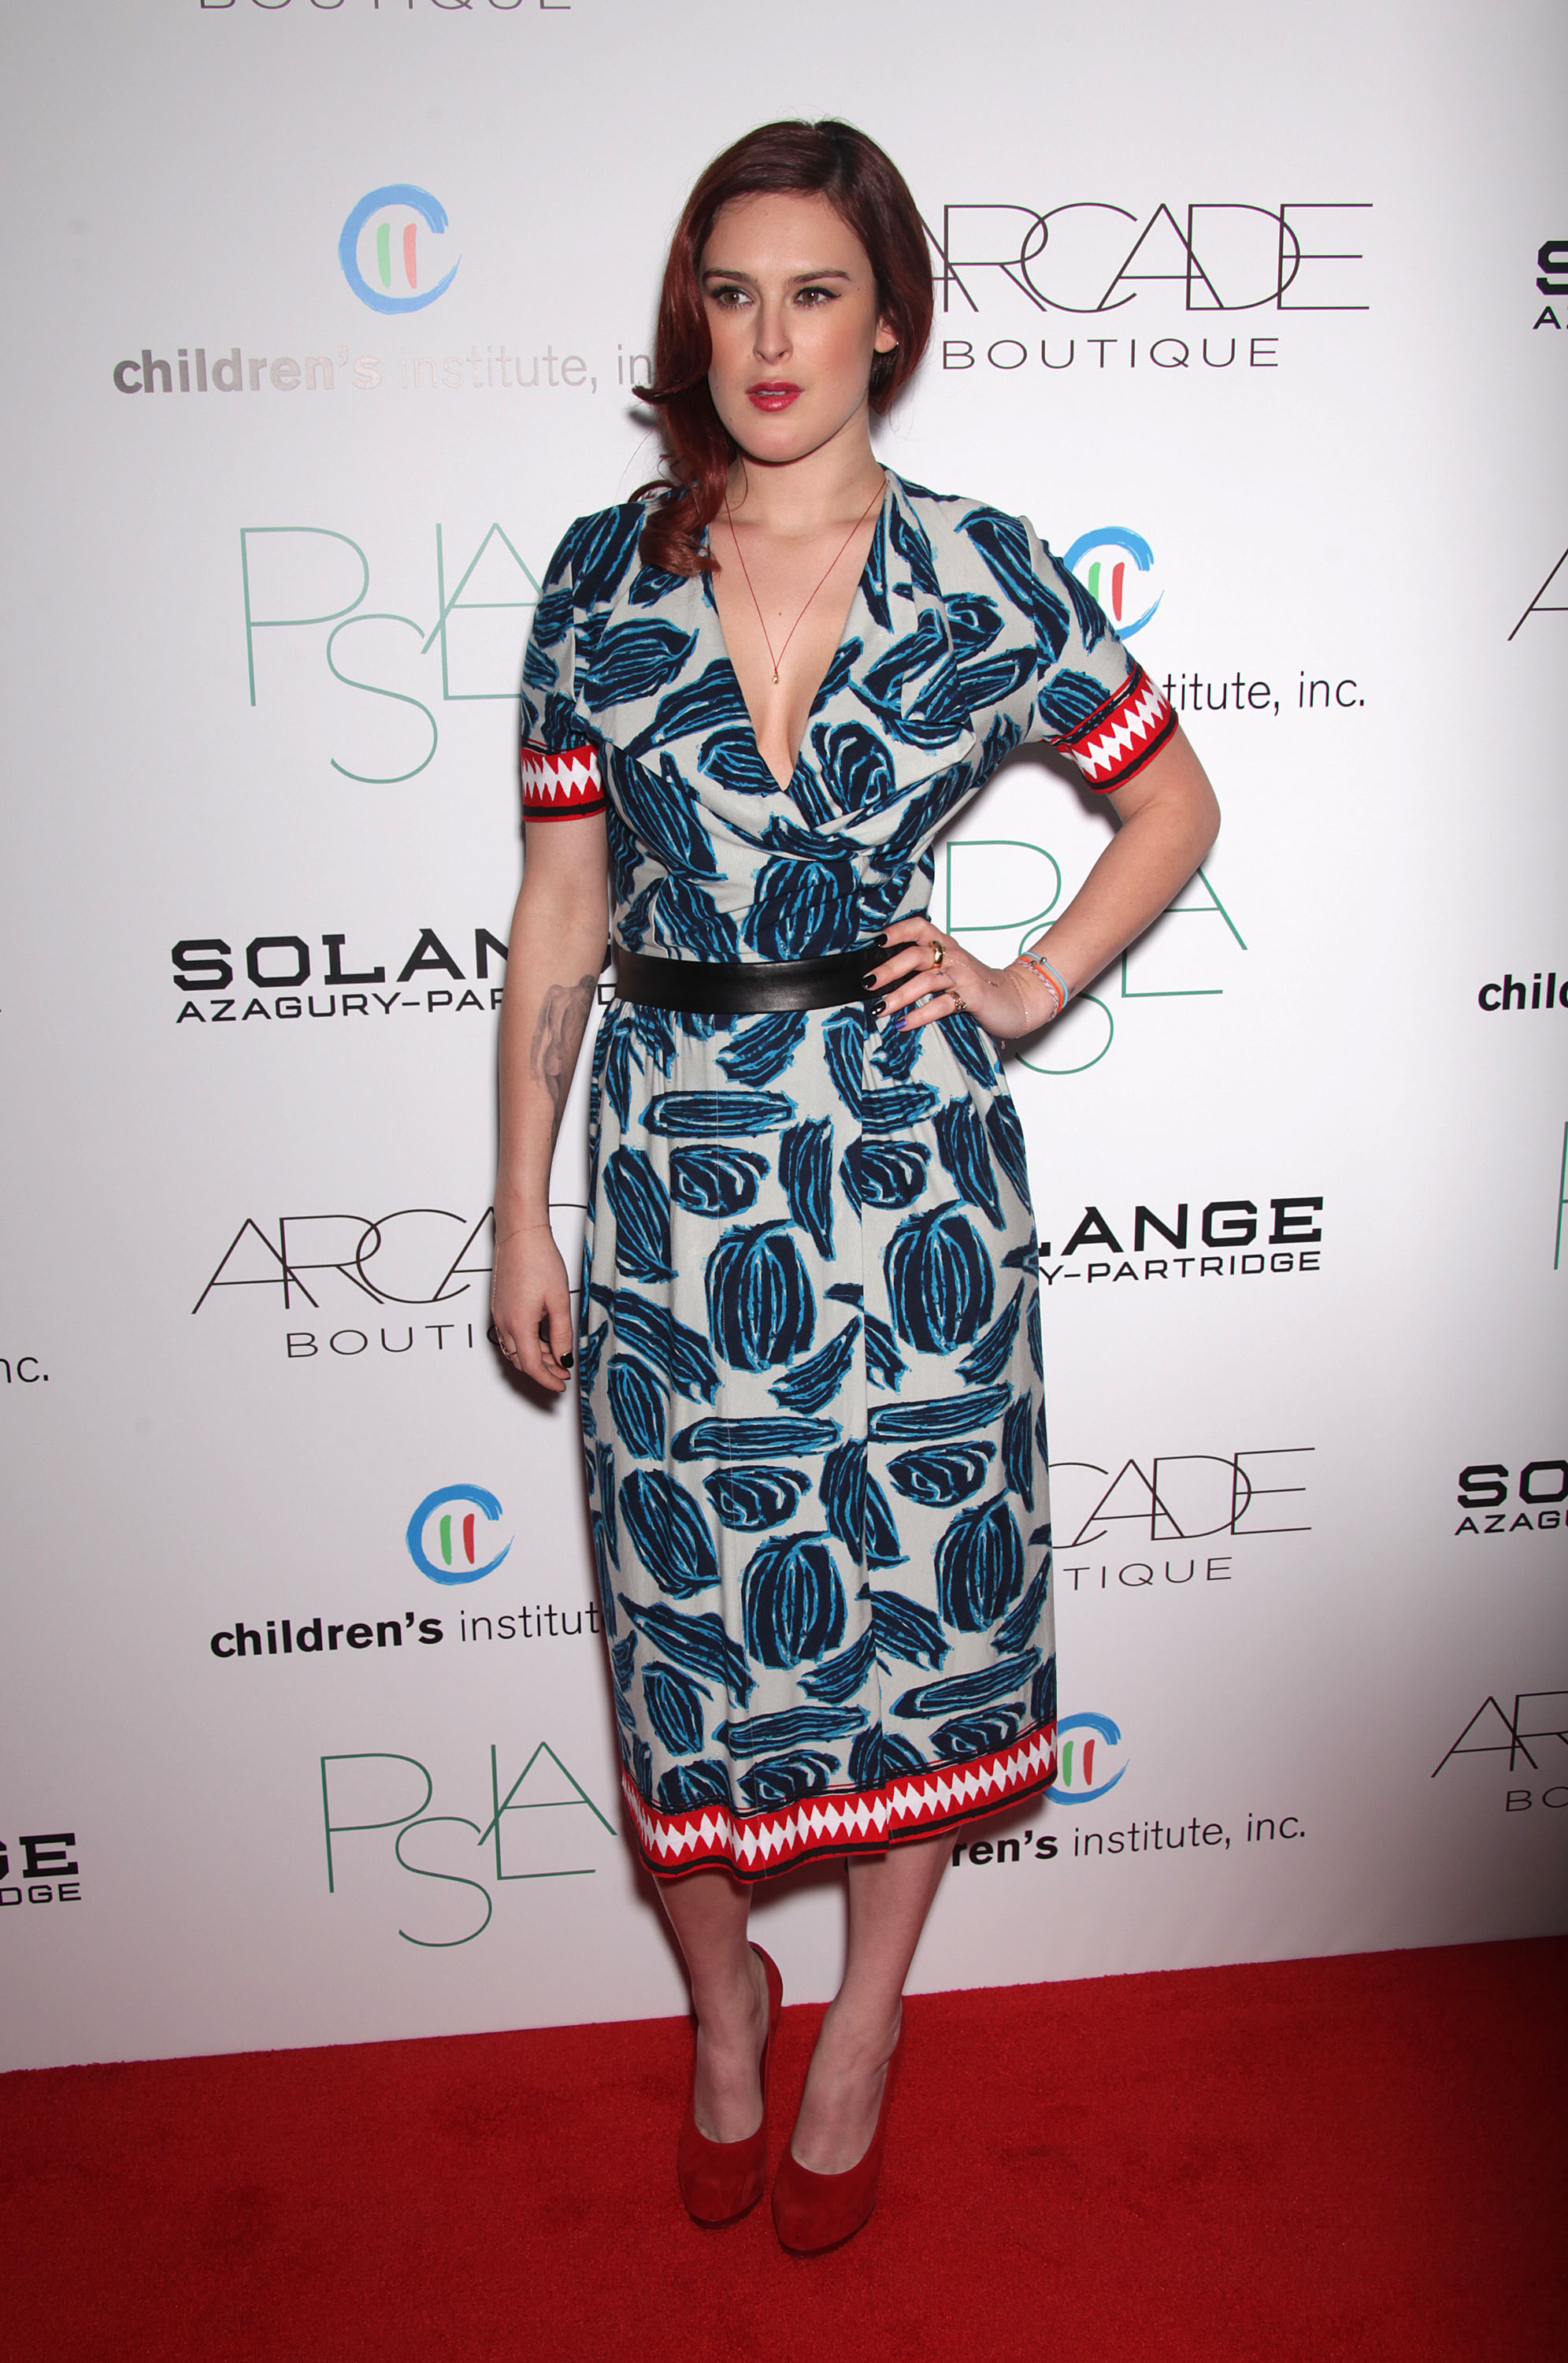 The 2nd Annual Autumn Party at the London Hotel in West Hollywood, CA